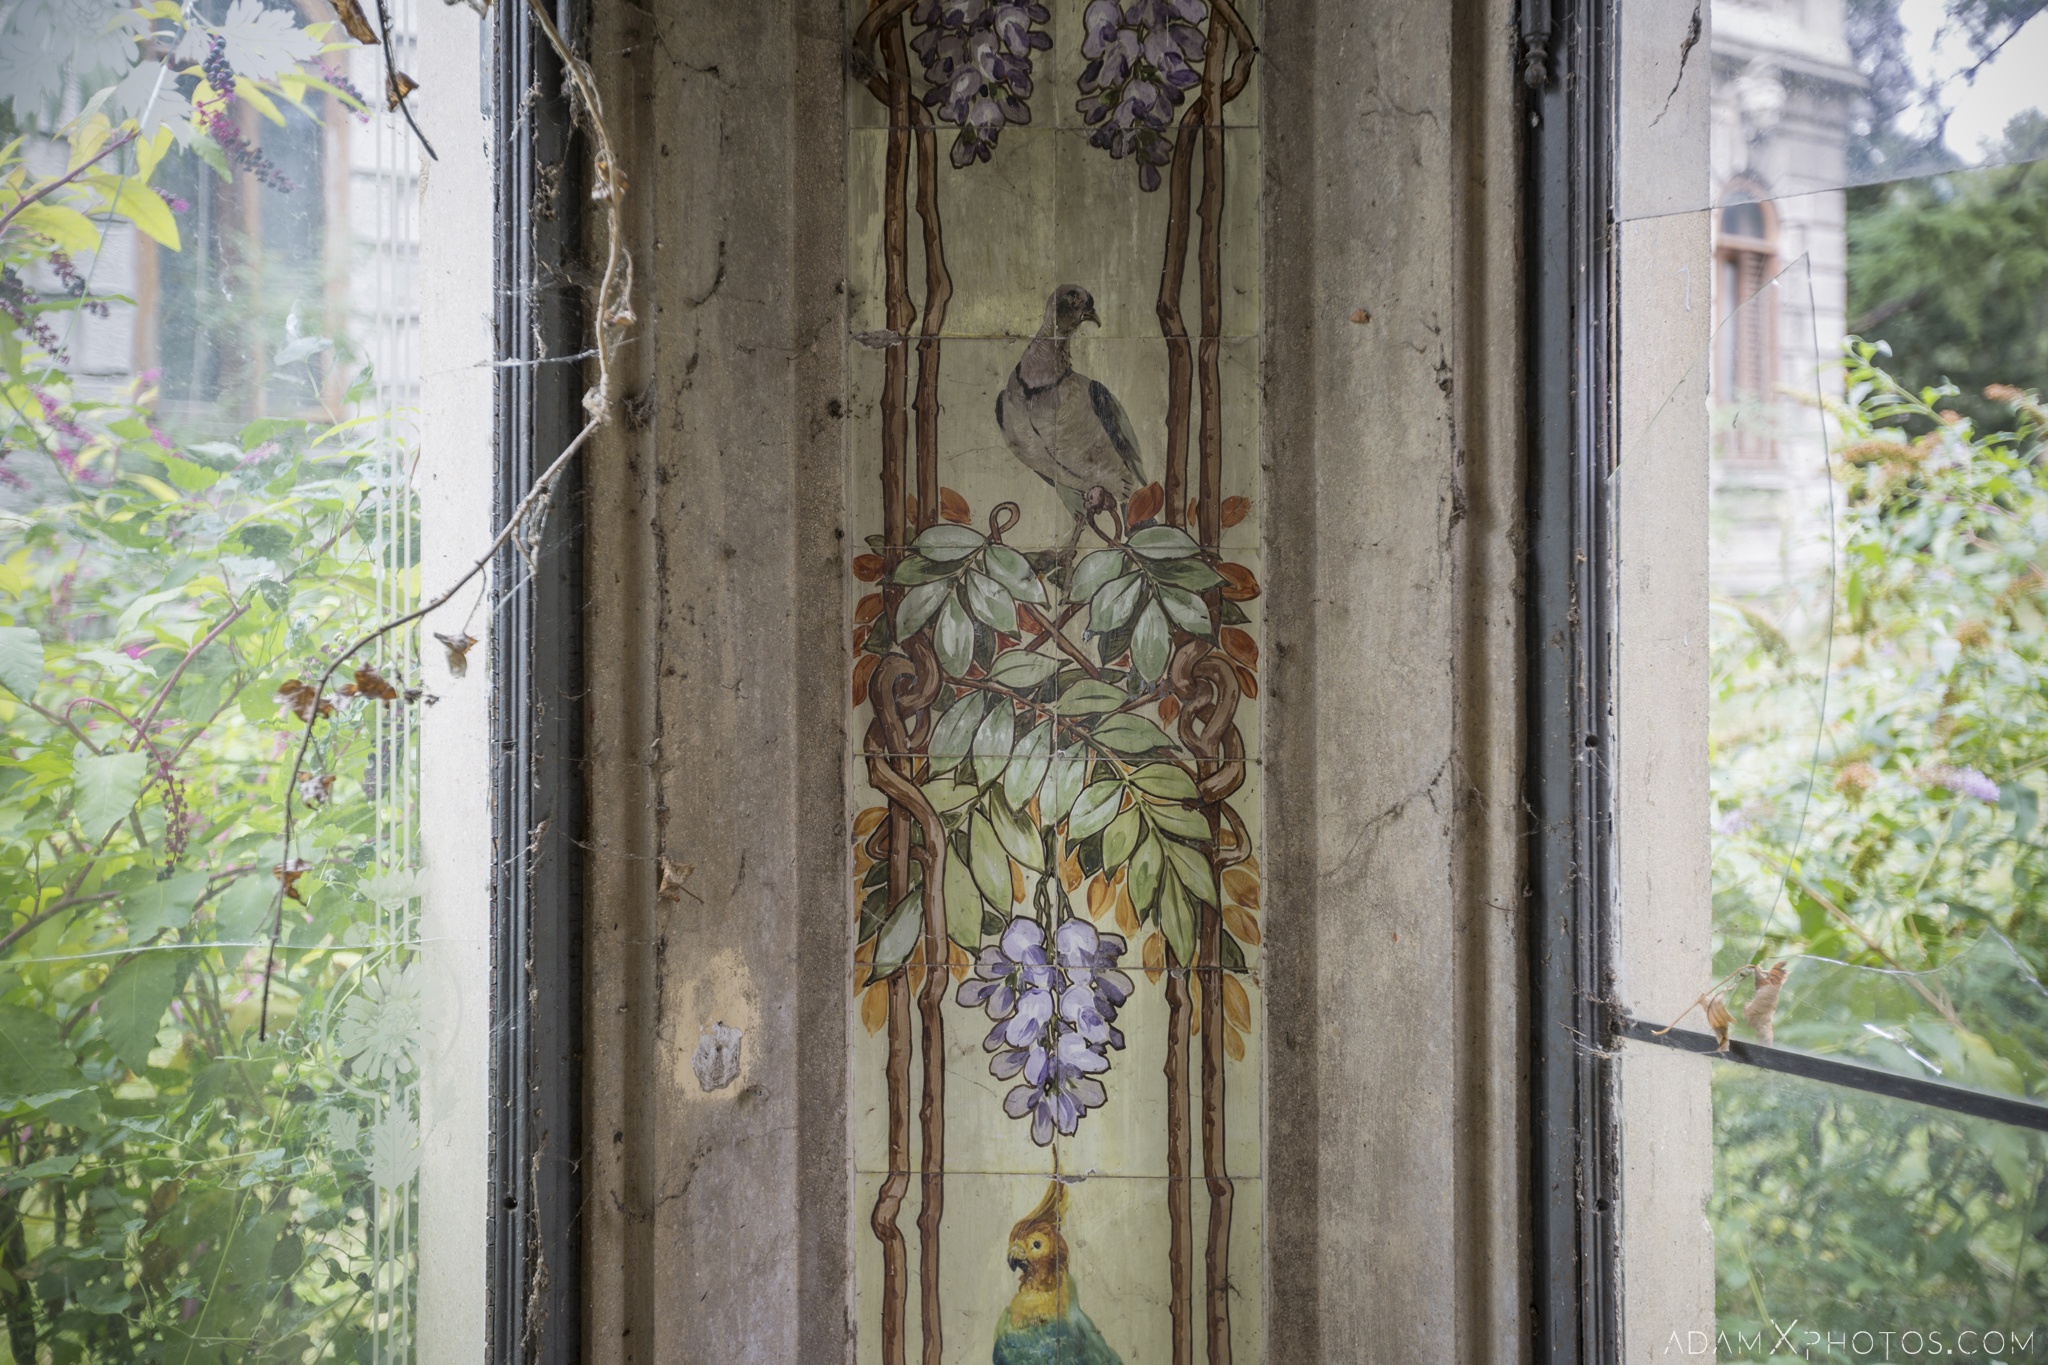 Tiles detail Greenhouse Orangery Garden summer House ornate windows rockery Villa Pesenti P Urbex Adam X Urban Exploration Italy Italia Access 2016 Abandoned decay lost forgotten derelict location creepy haunting eerie